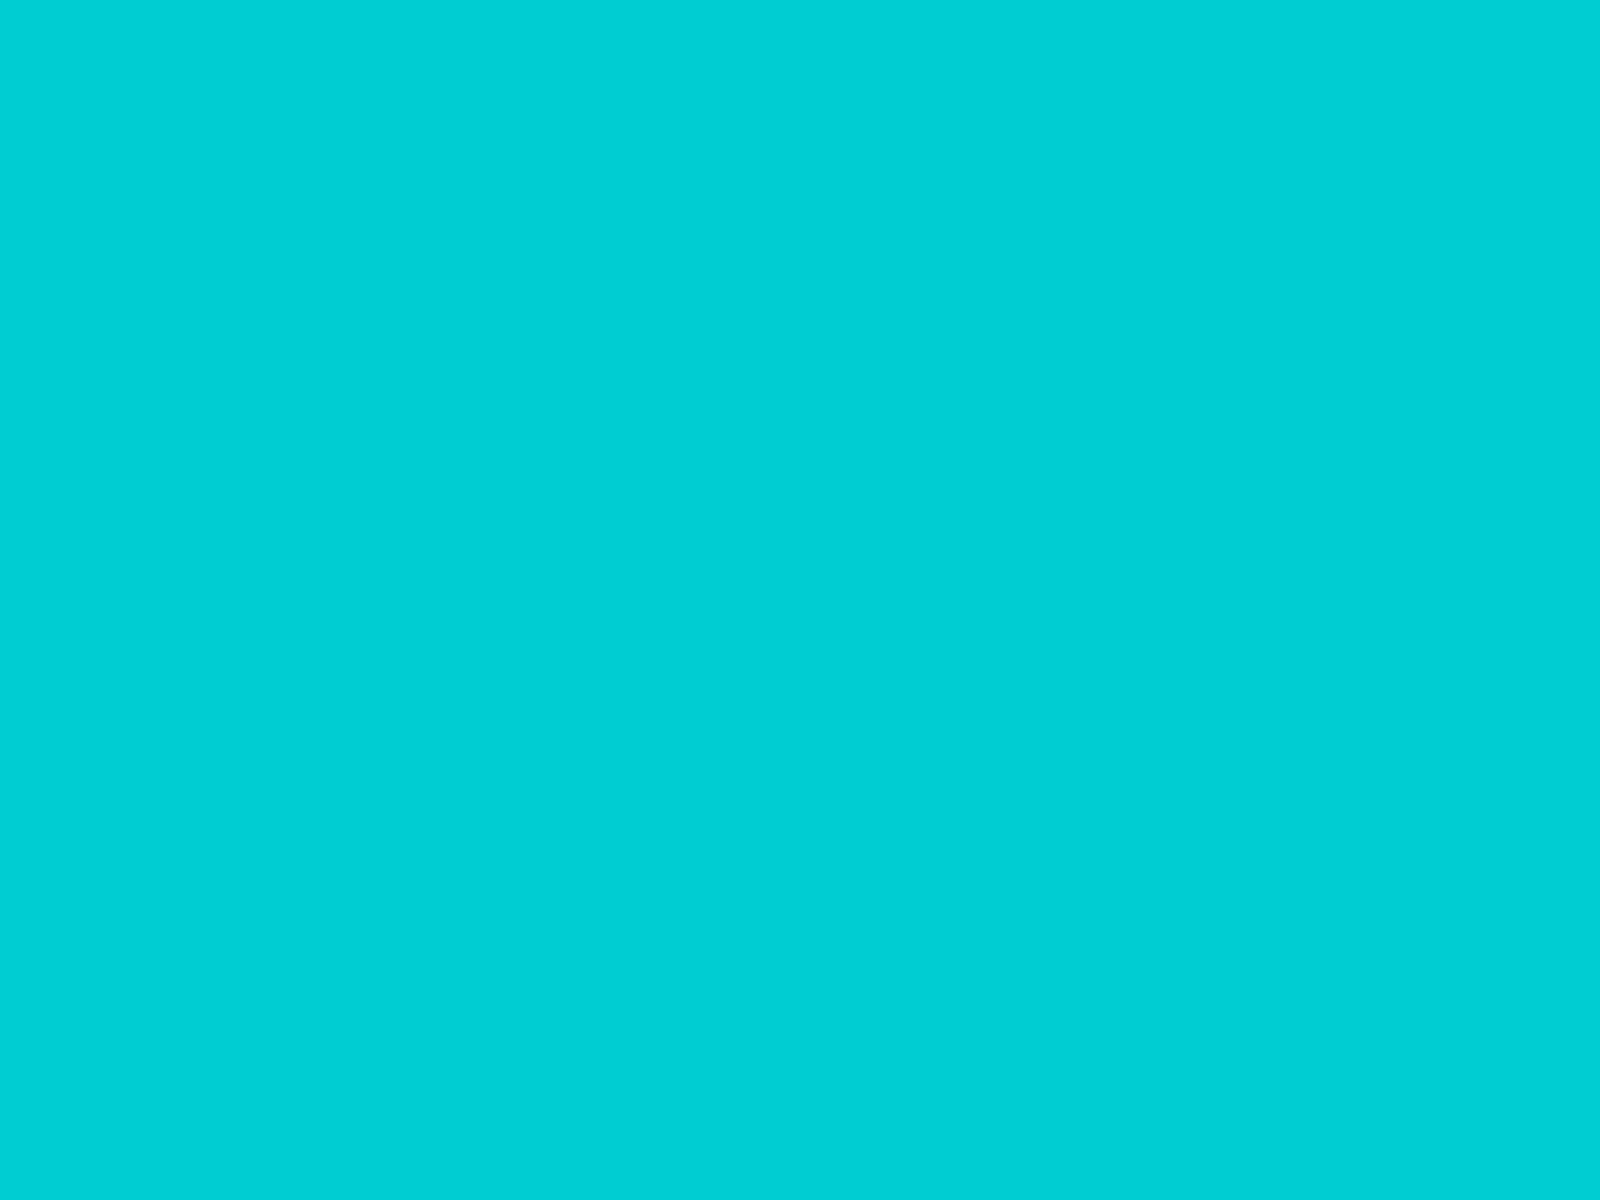 1600x1200 Dark Turquoise Solid Color Background